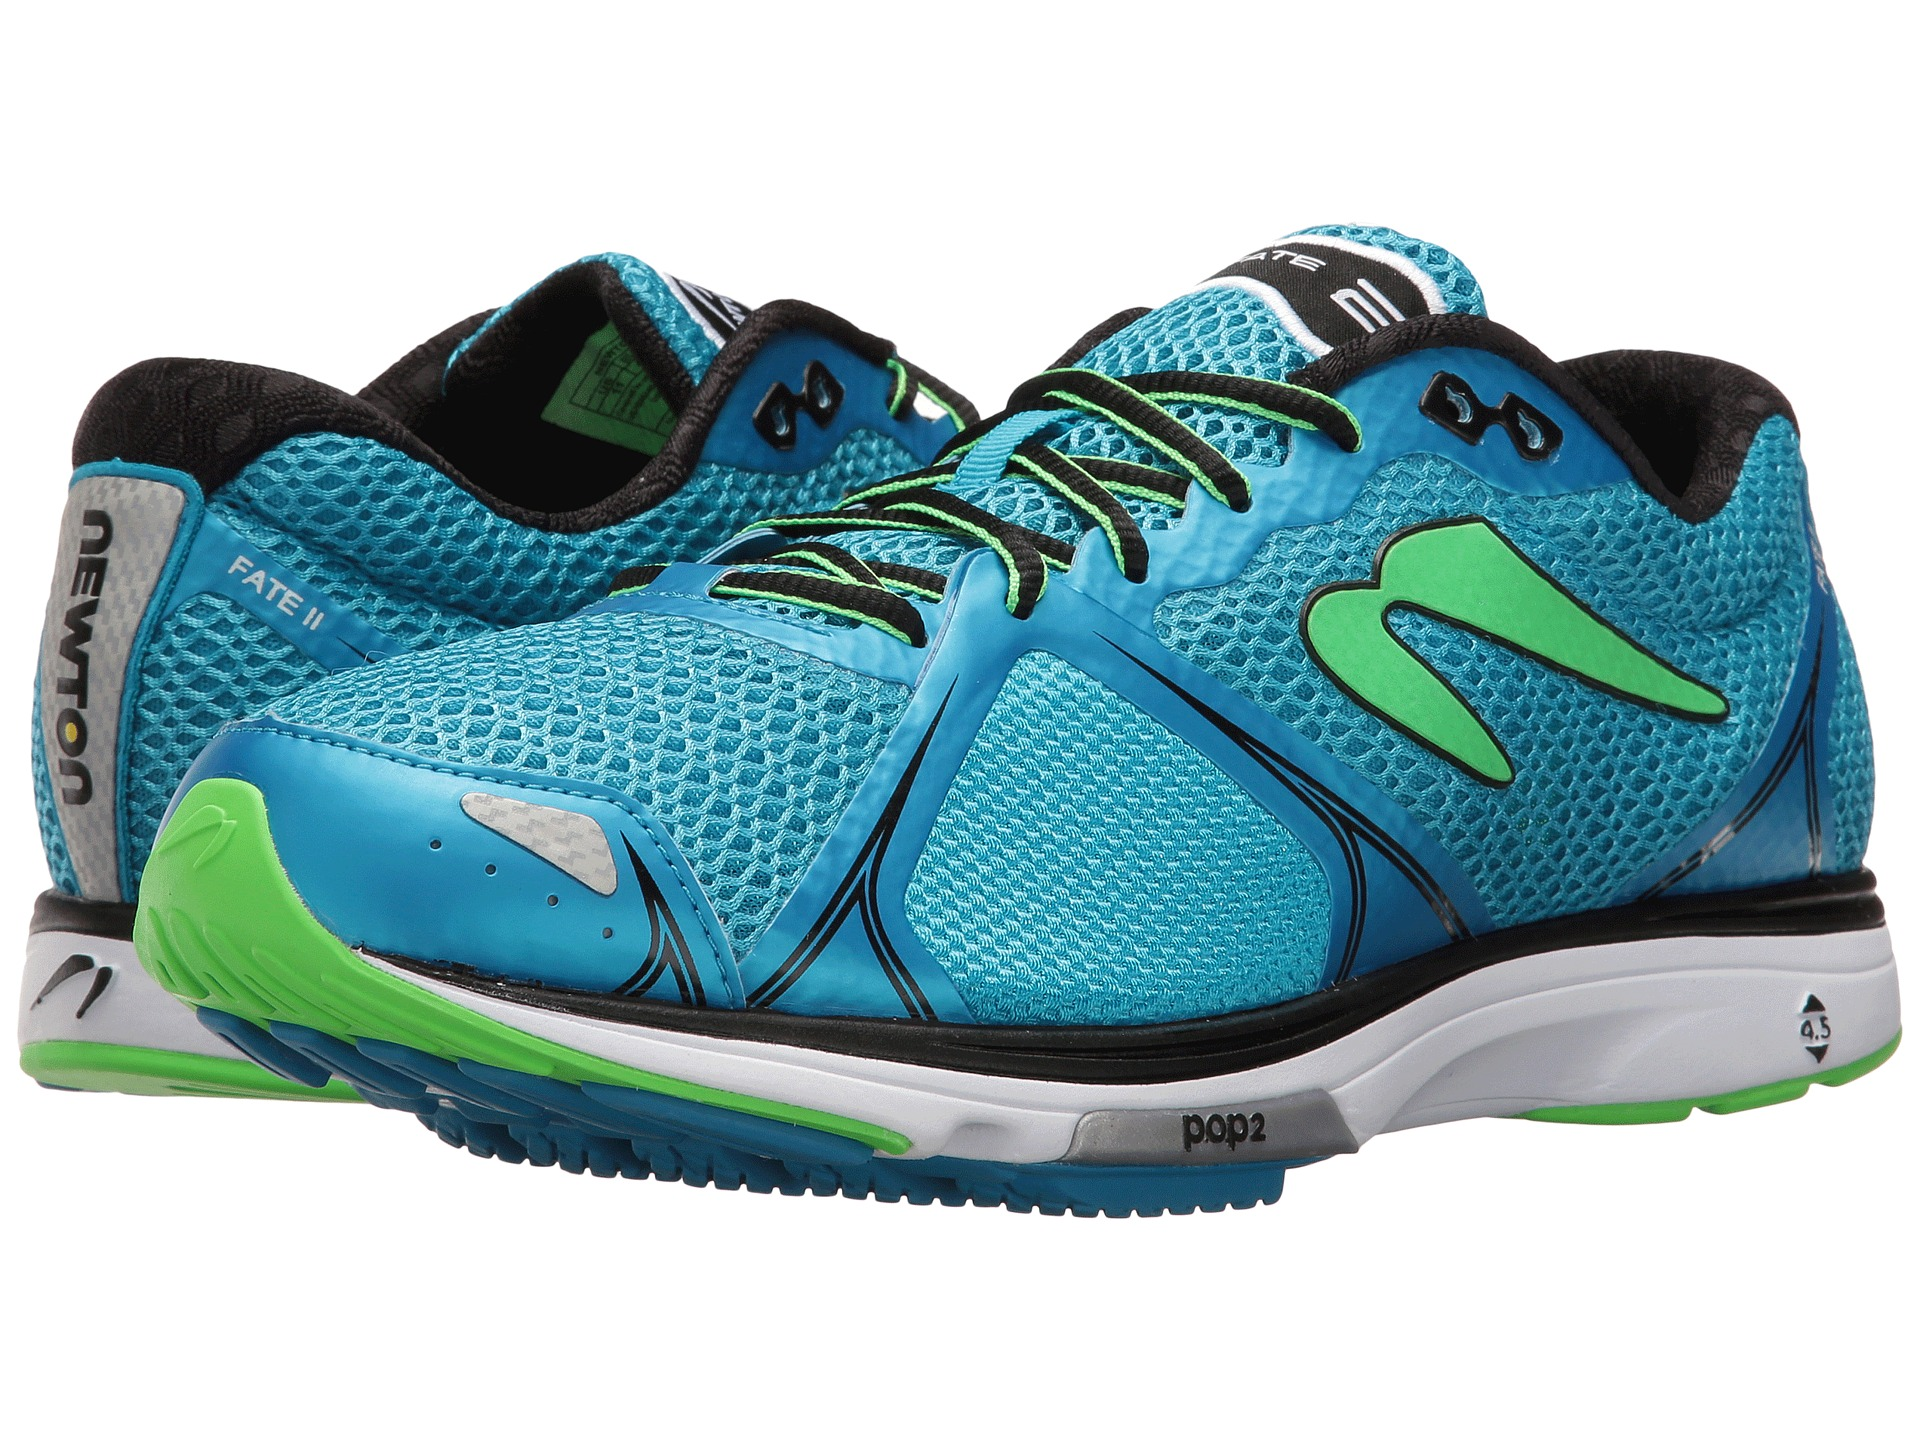 Adjusting To Newton Running Shoes